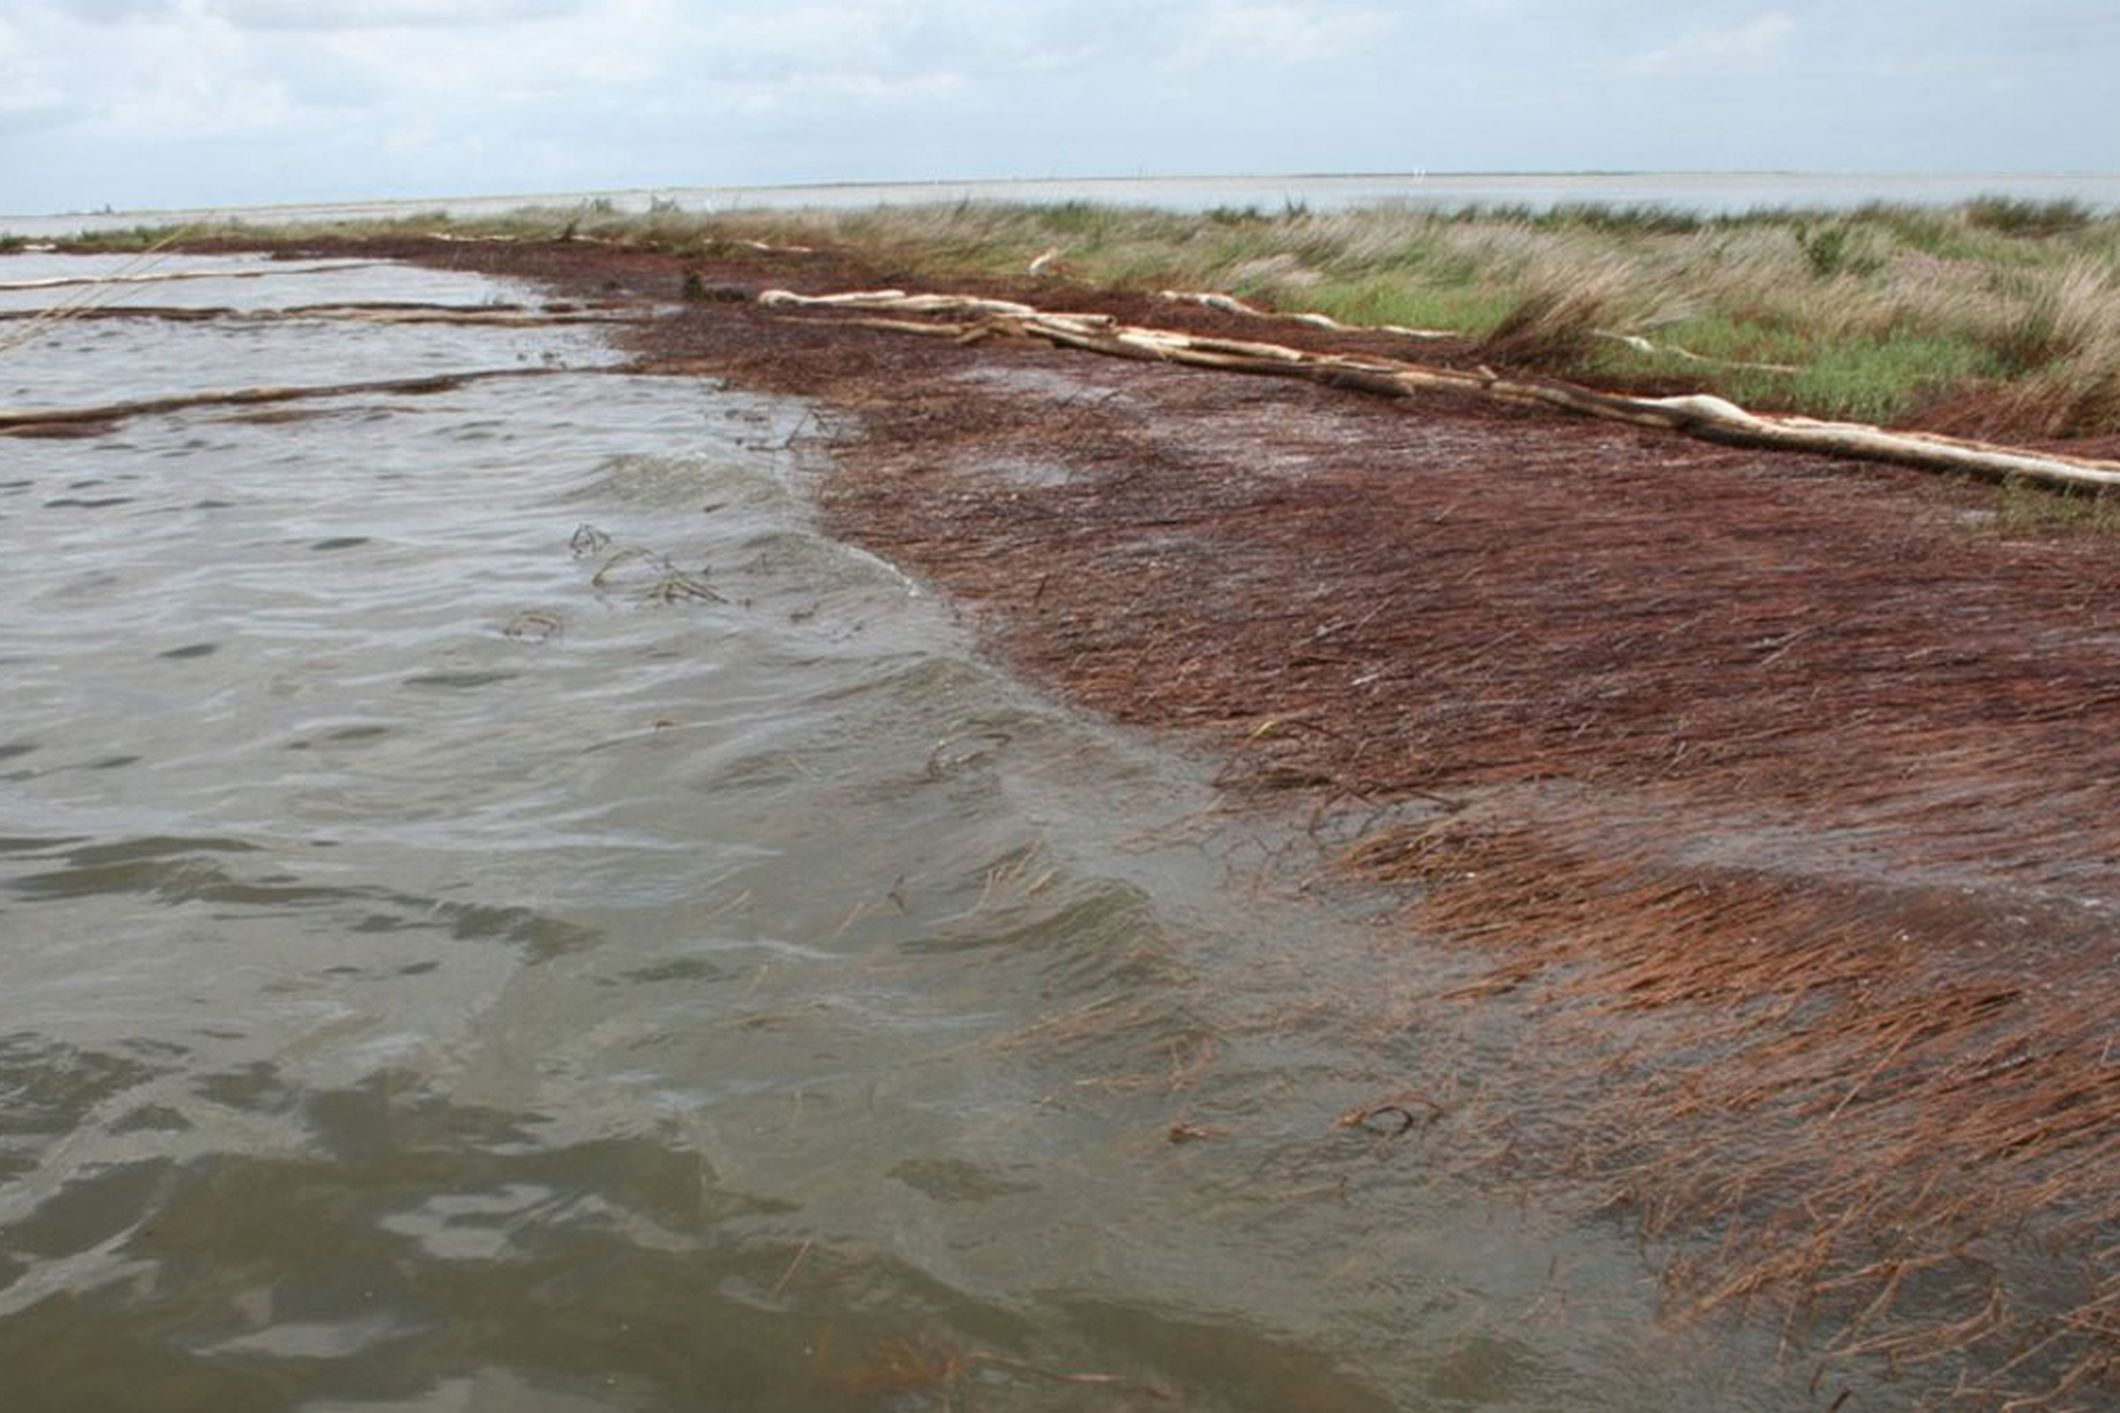 The 2010 Deepwater Horizon oil spill caused widespread land erosion in Louisiana thumbnail